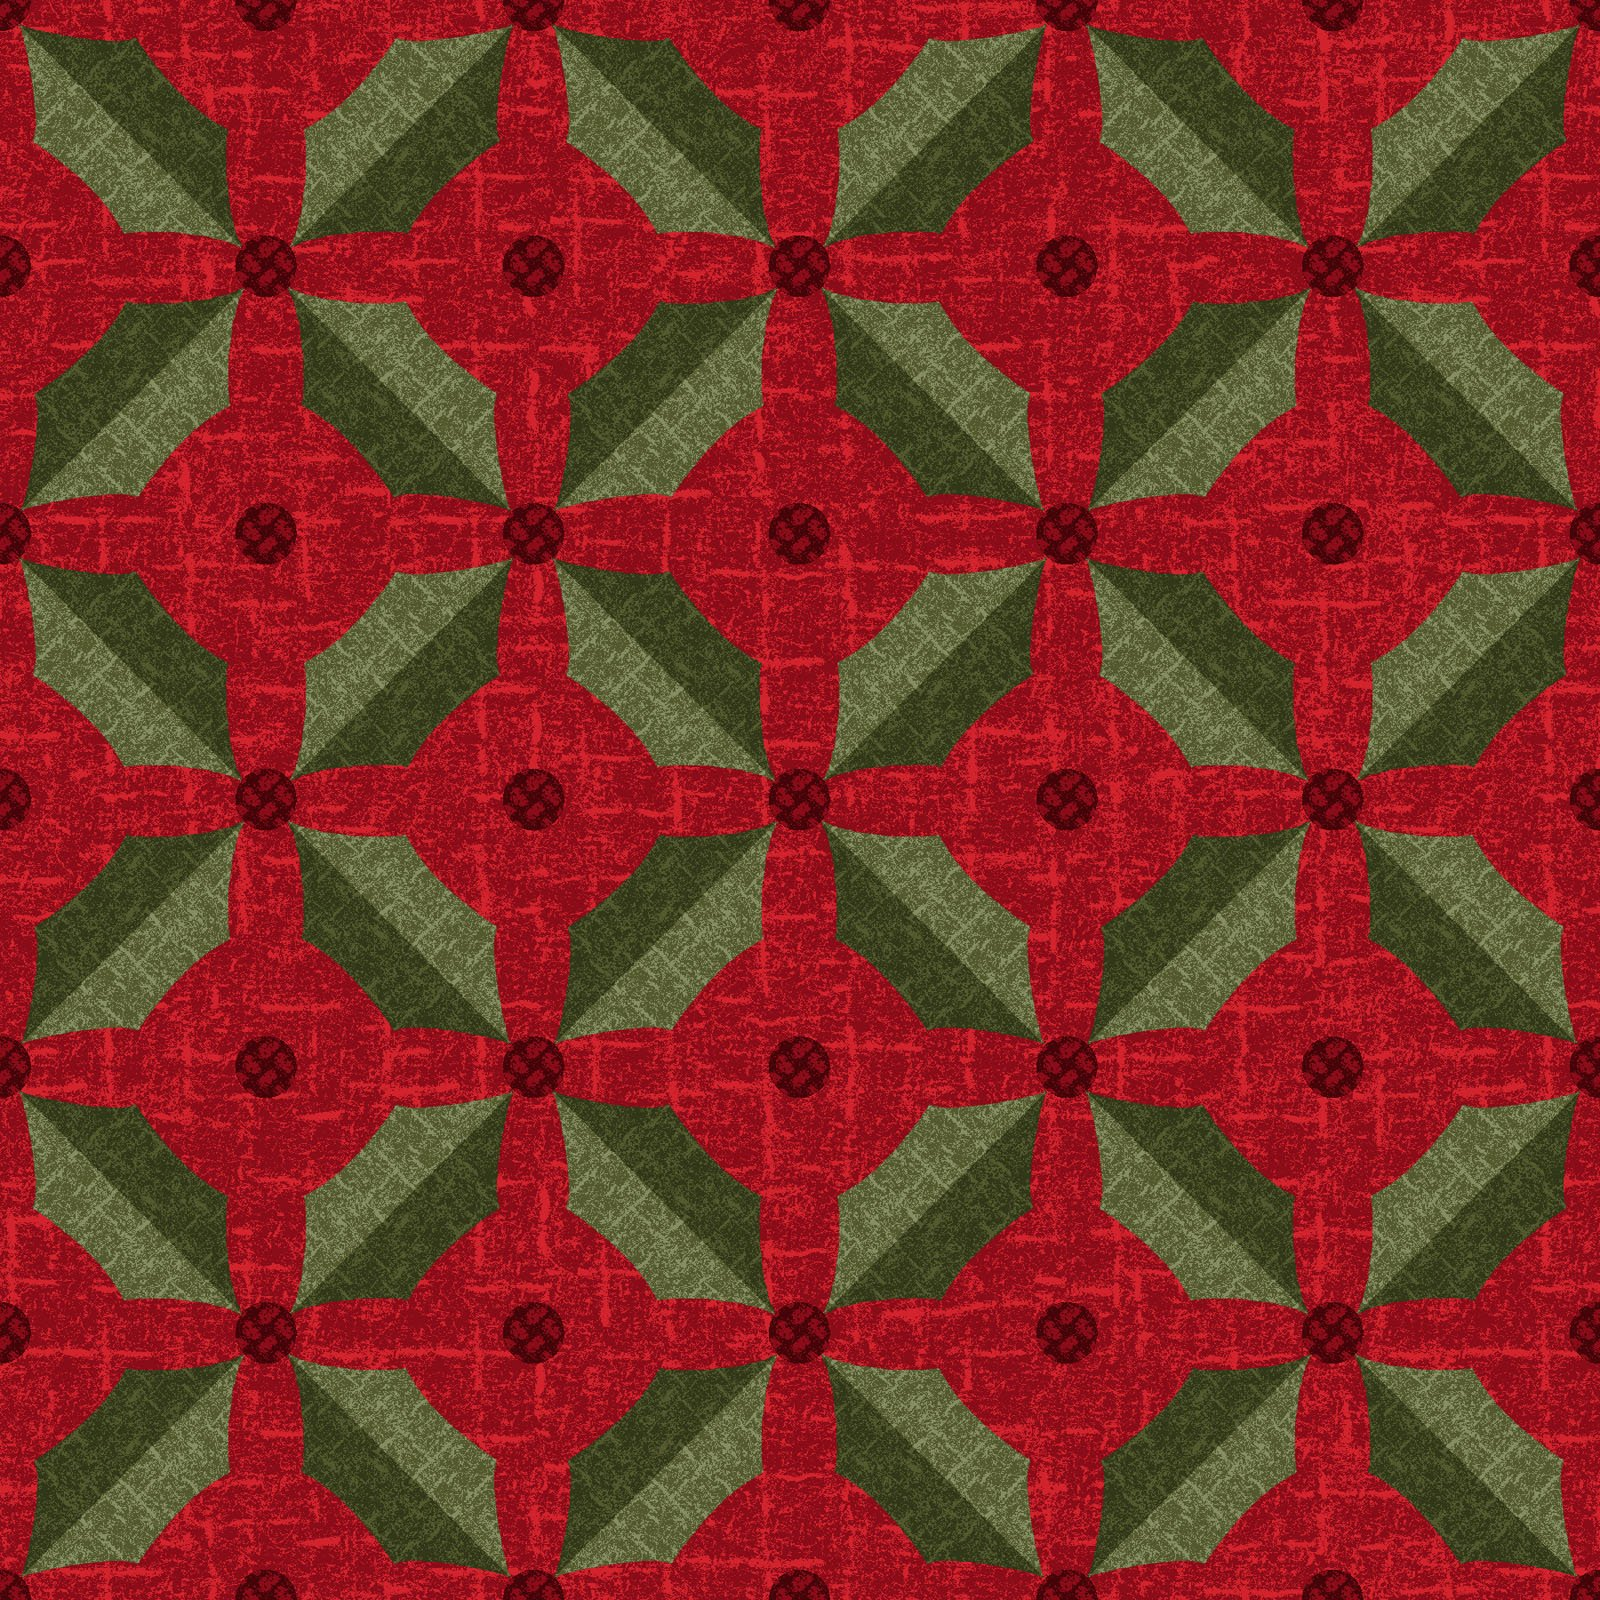 EESC-F9935 R - SNOWDAYS FLANNEL BY BONNIE SULLIVAN HOLLY RED - ARRIVING IN AUGUST 2021